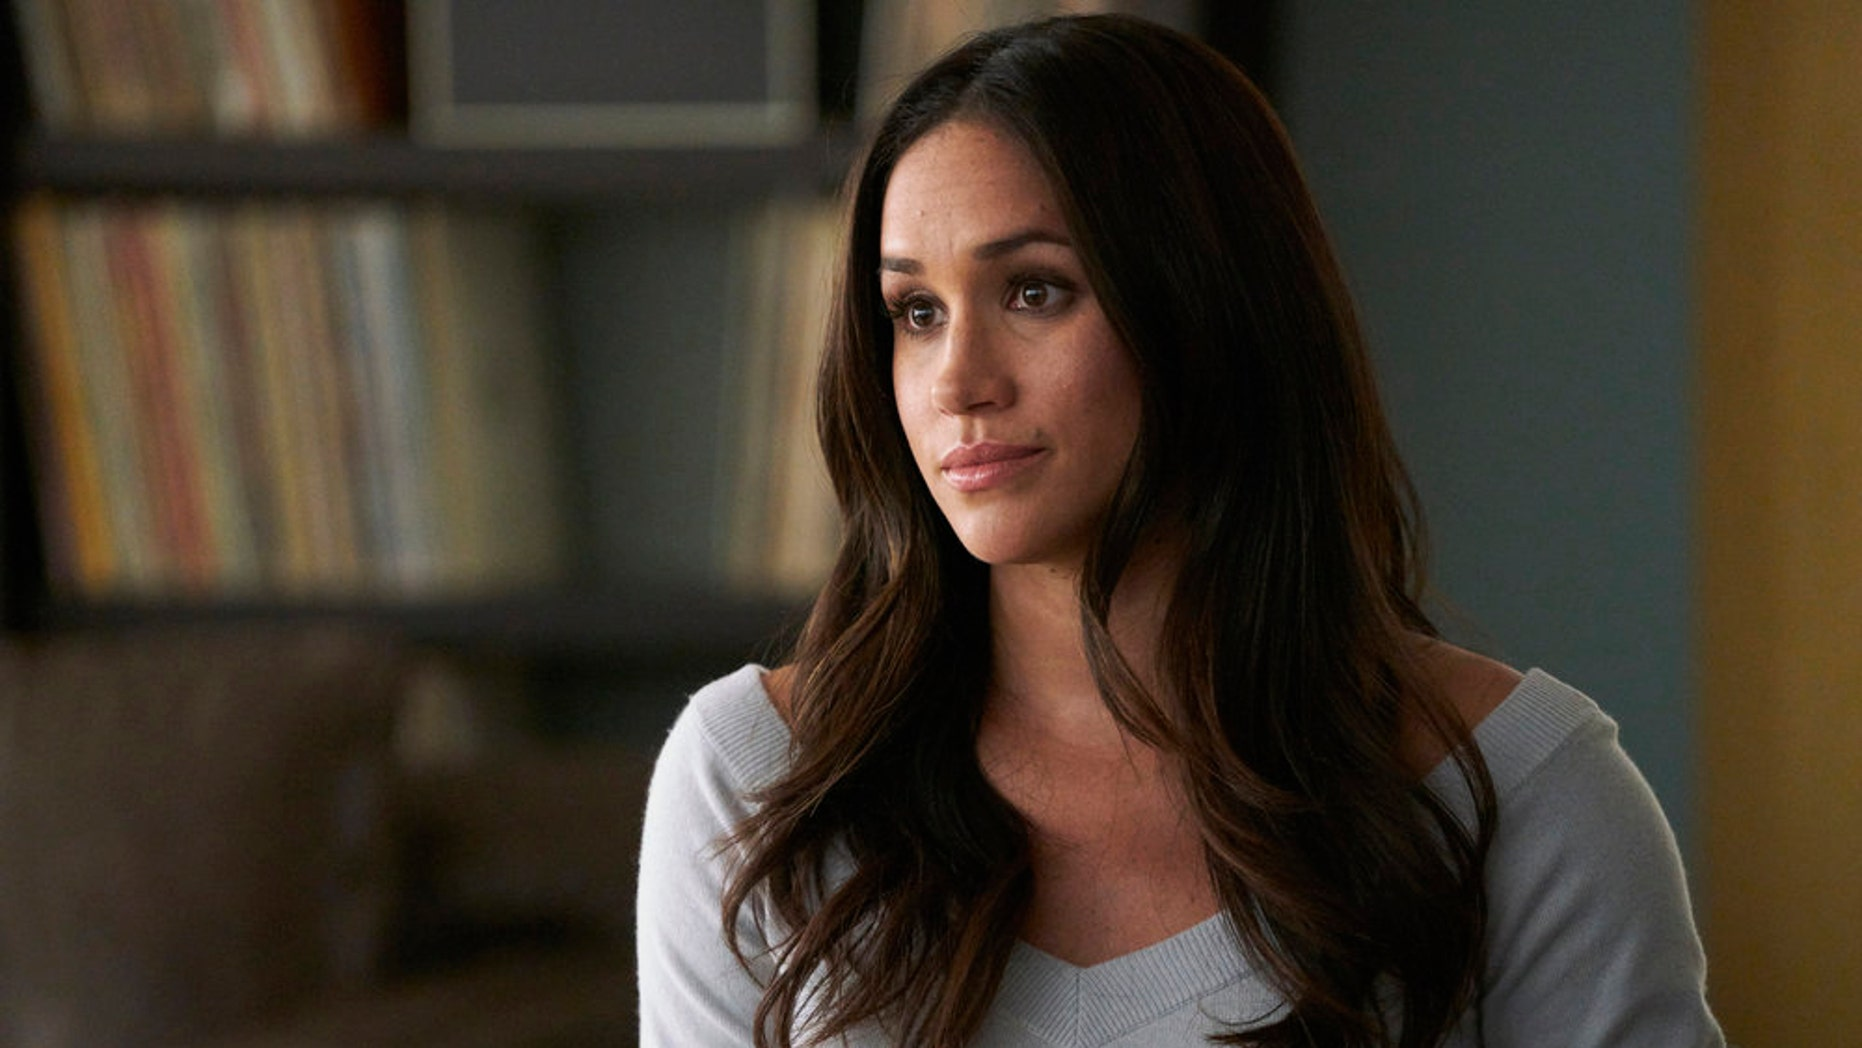 """Meghan Markle was a star in USA Network's legal drama """"Suits"""" before she married Britain's Prince Harry."""